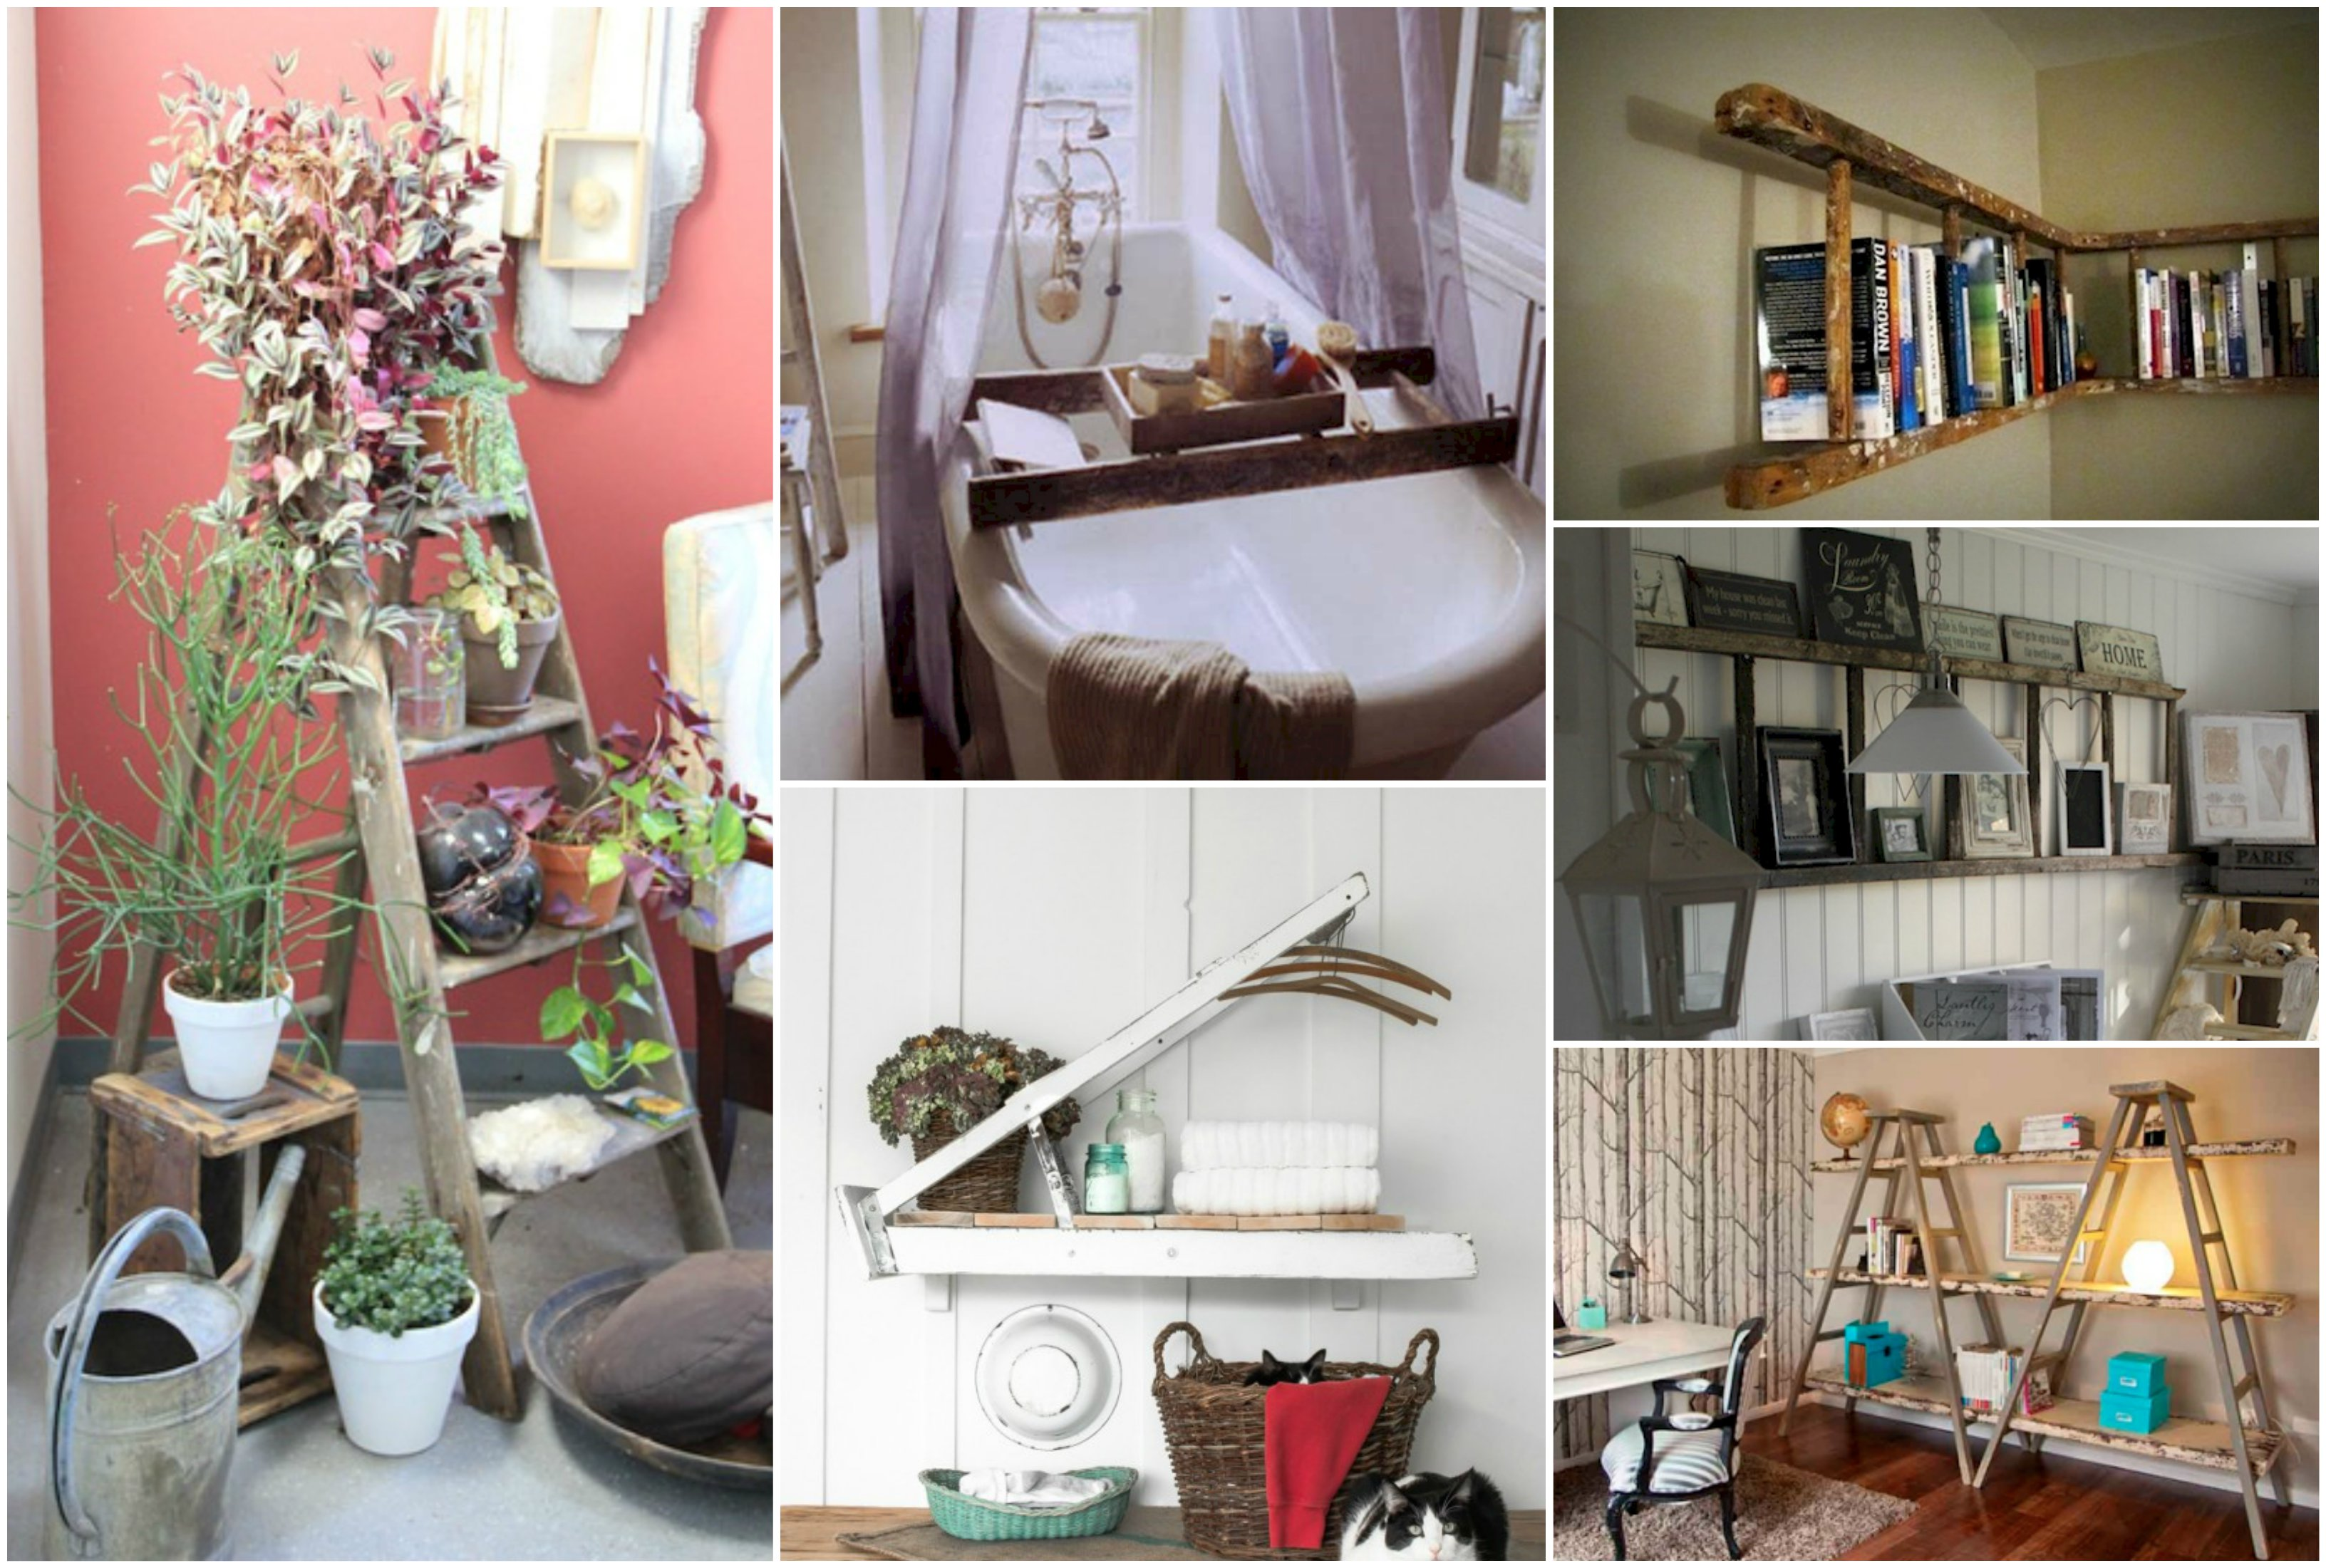 20 Creative Ways To Use Ladders For Home Decorating